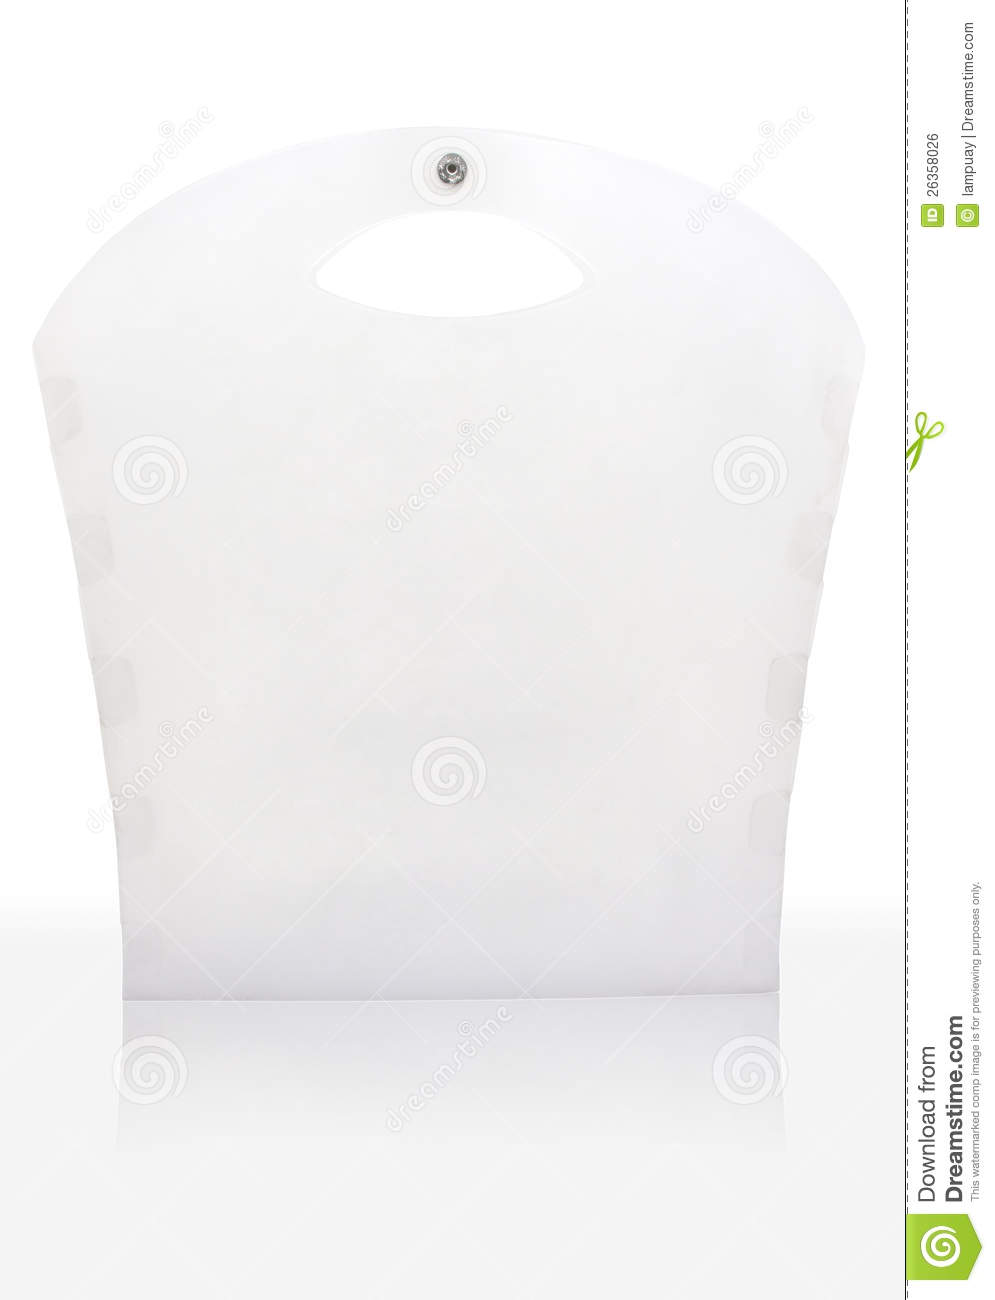 Polypropylene (PP) Plastic Bag Royalty Free Stock Image - Image: 26358026